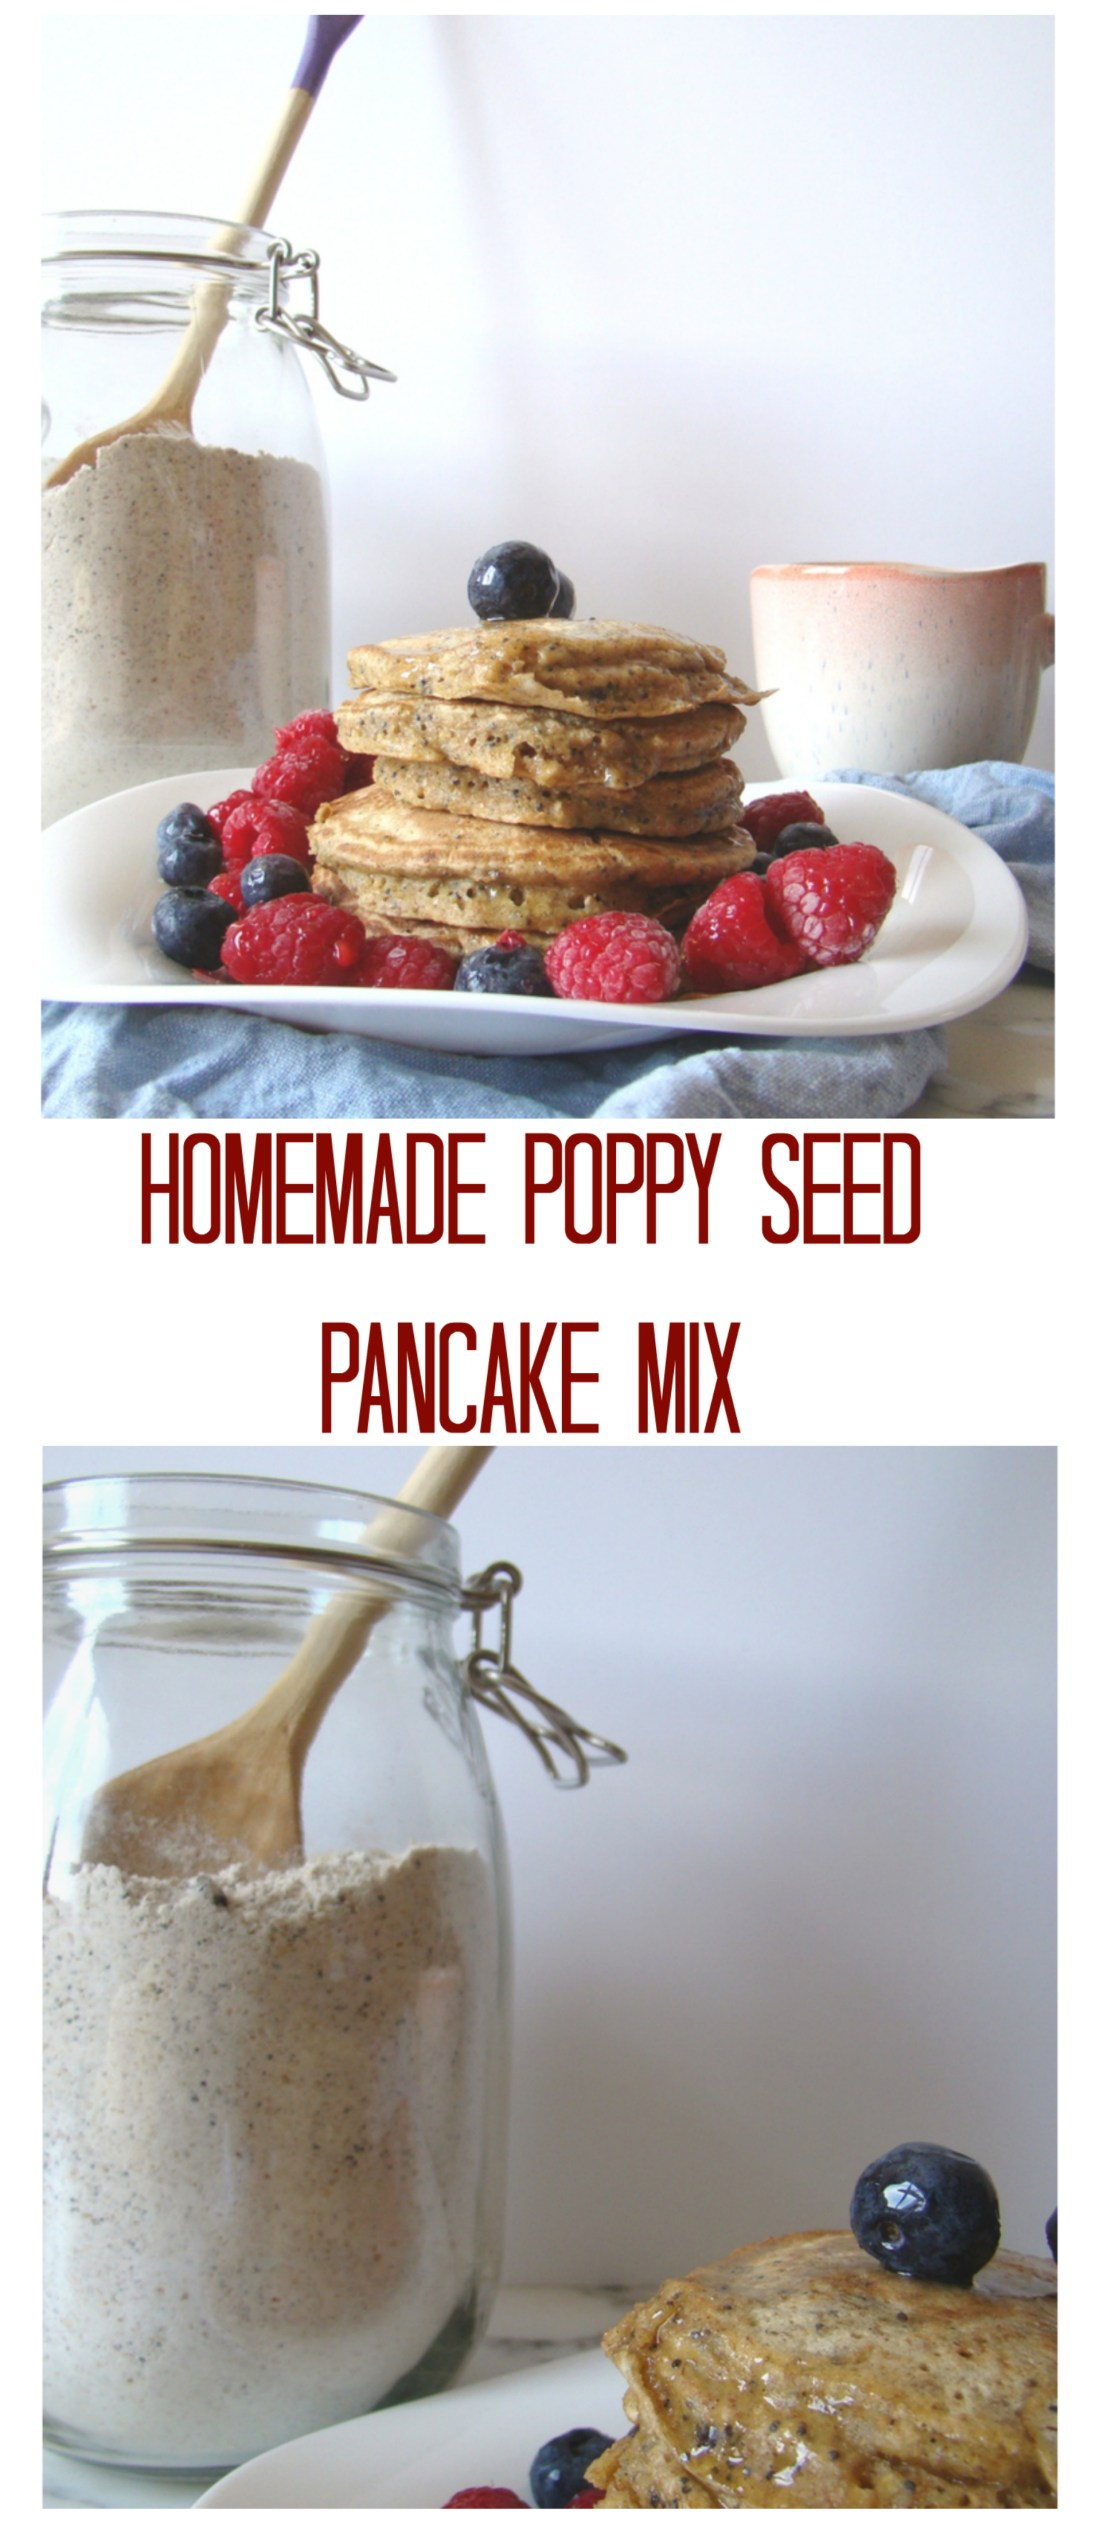 Homemade Poppy Seed Pancake Mix